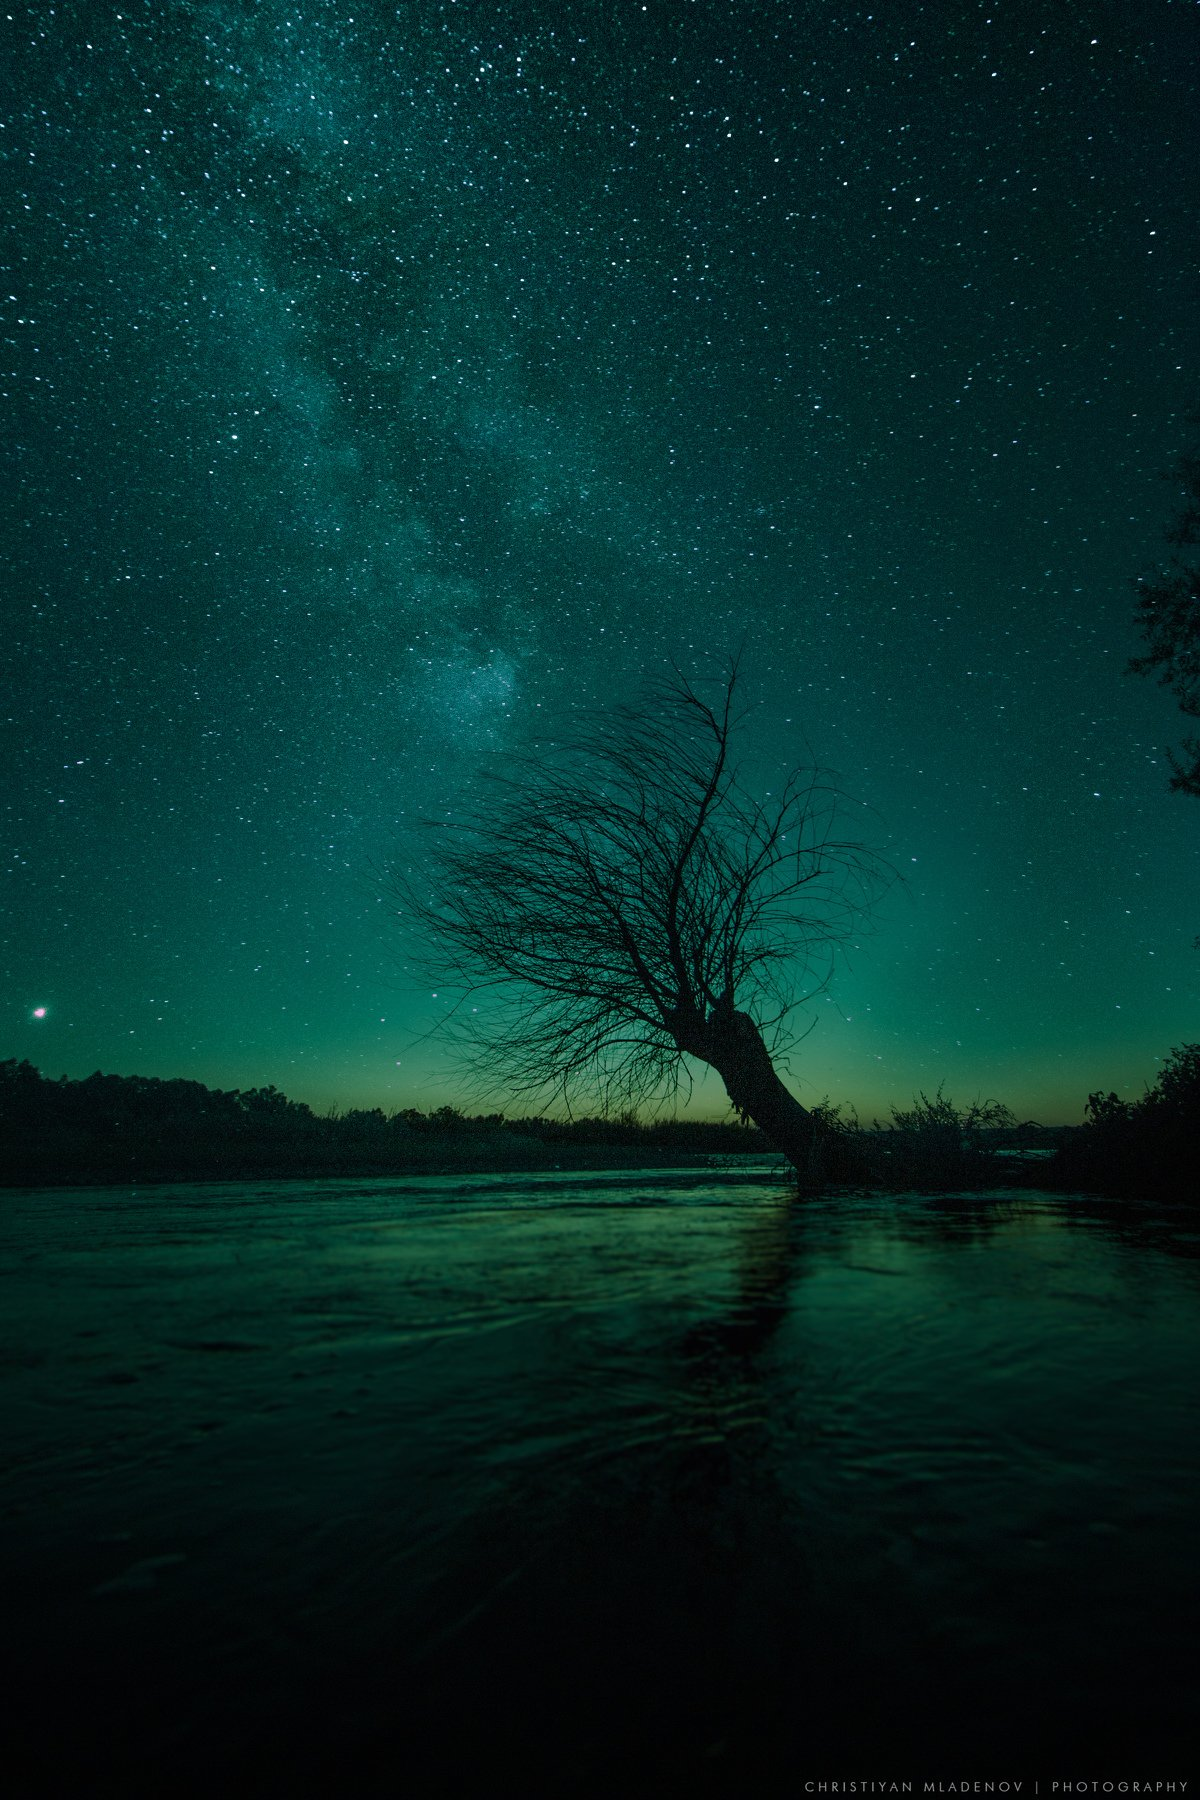 night. astrophotography, astronomy, tree, cosmos, lonely, nightscape, river, milky way, galaxy, milkyway, space, stars, sky, bulgaria, nature, light, long exposure, vertical, astroscape, Кристиян Младенов